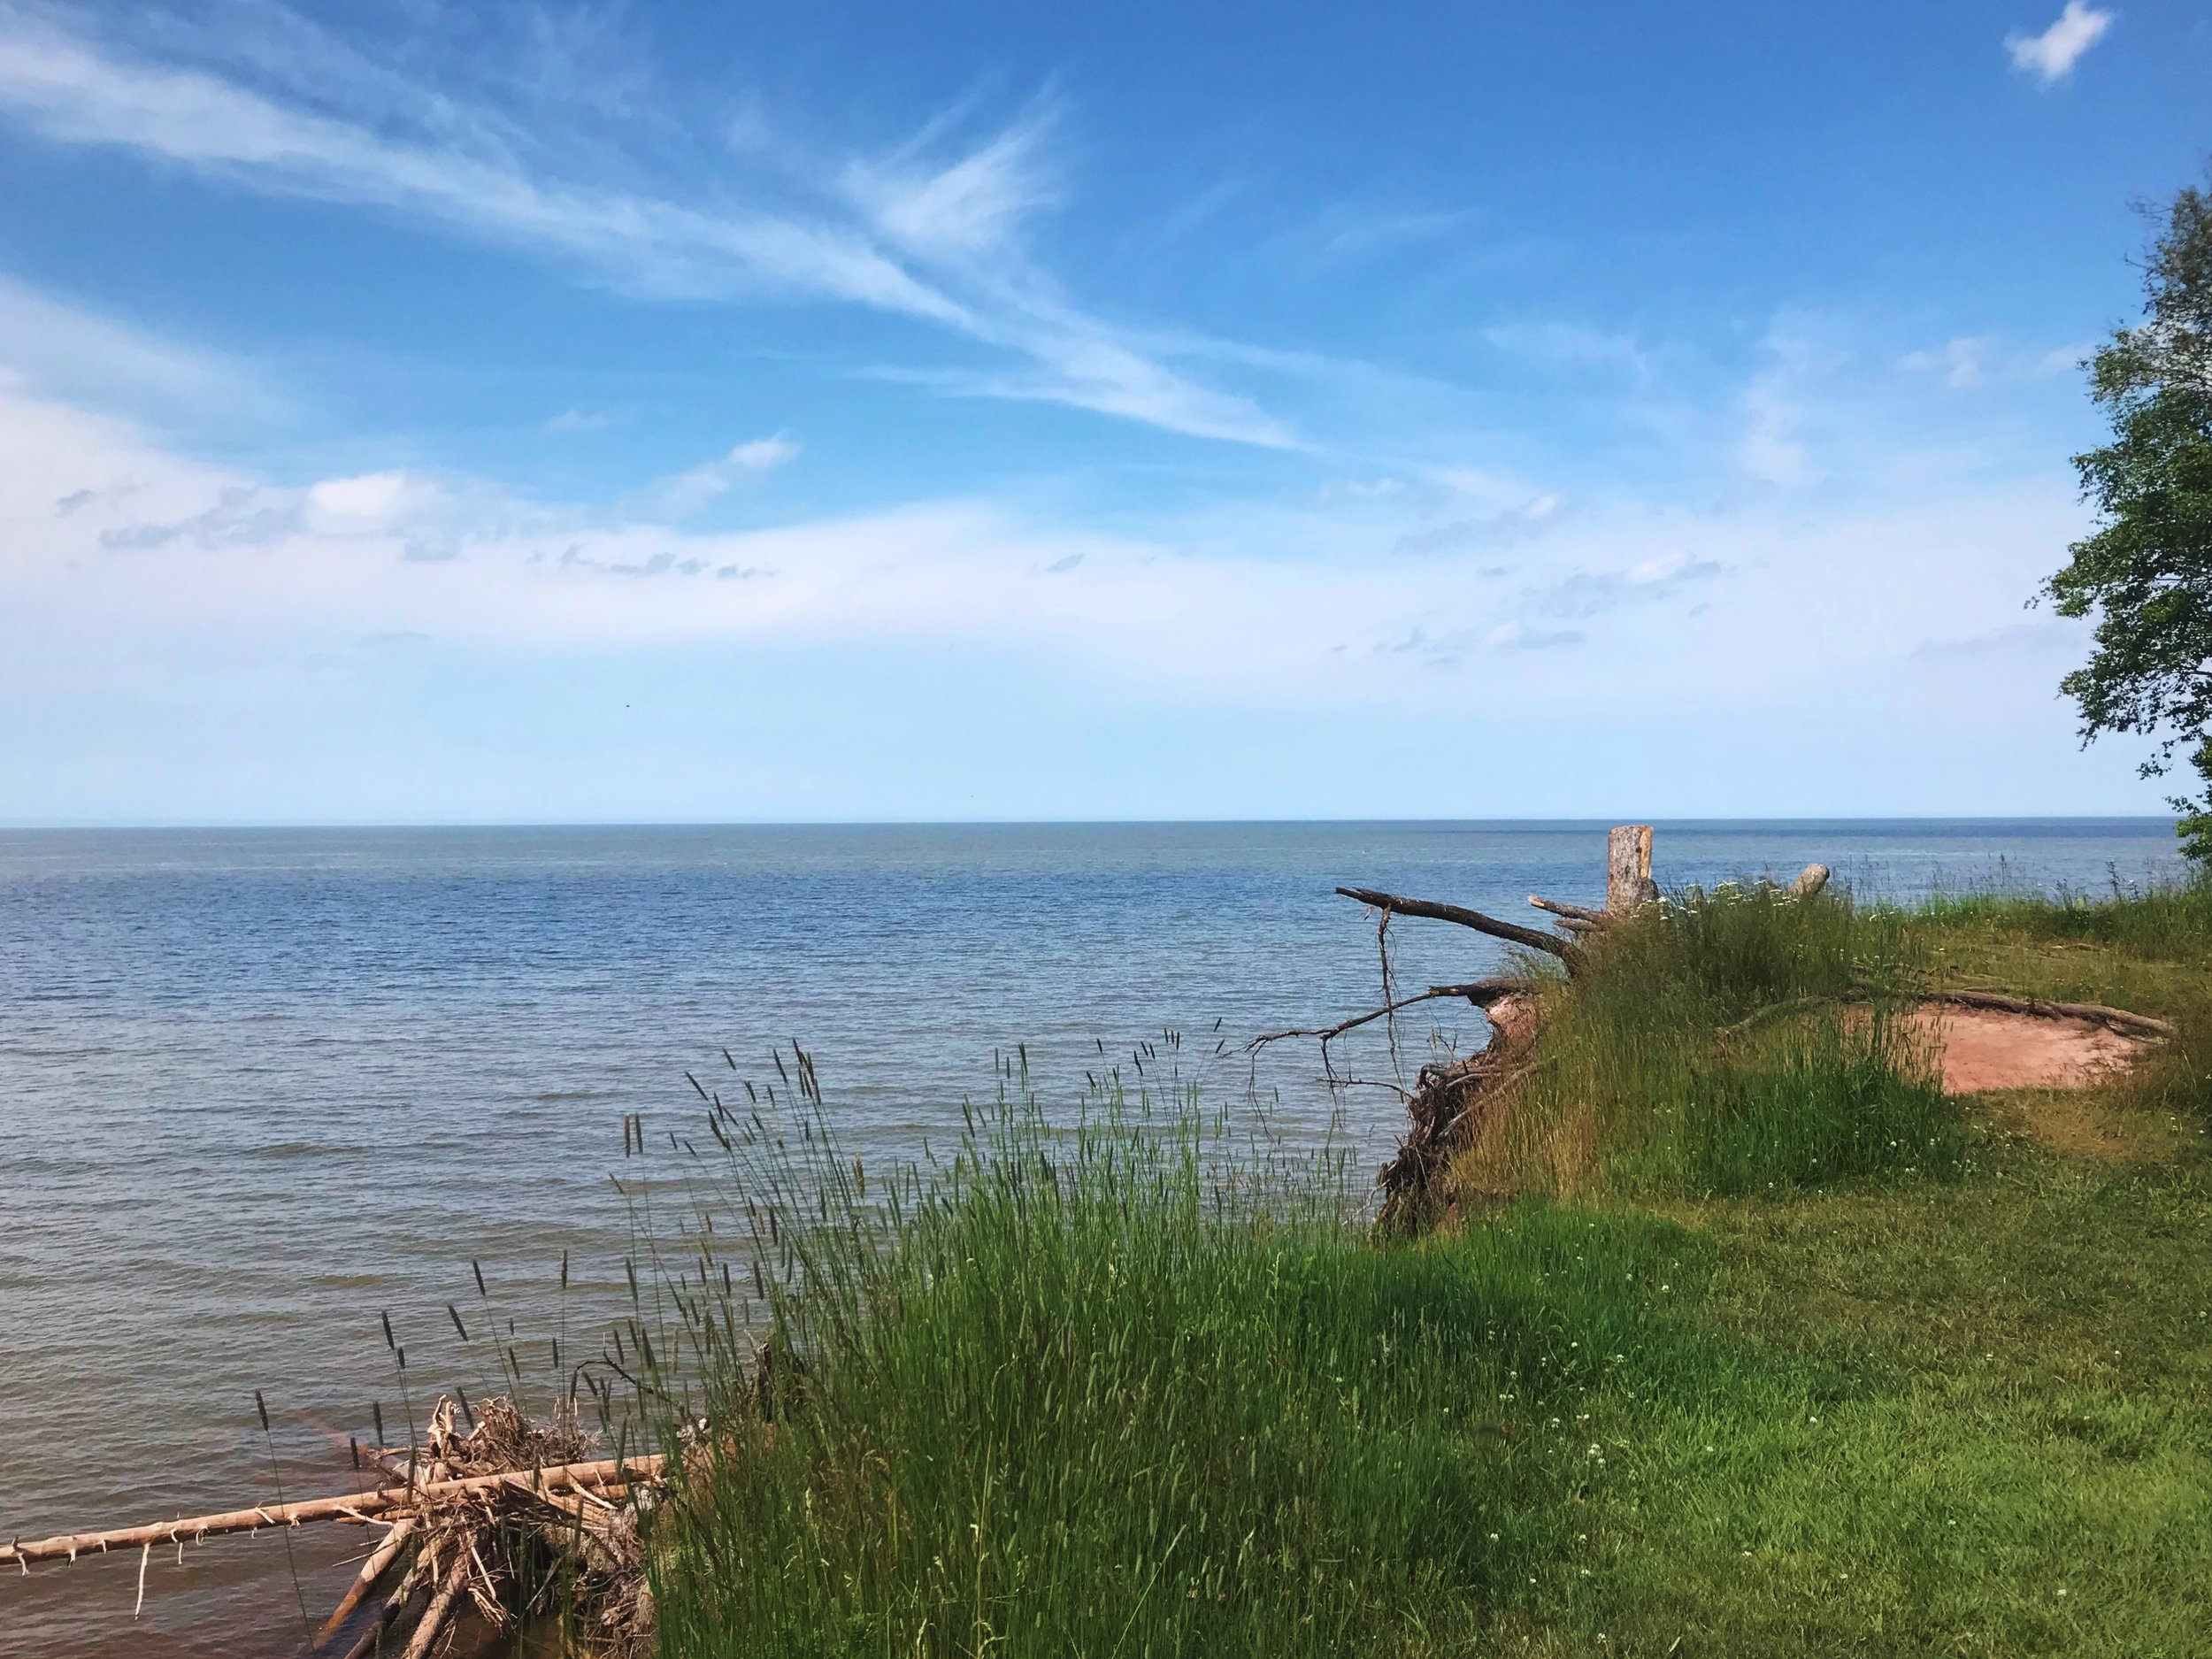 On the shore of Lake Superior, there is almost always a cool breeze. Unfortunately, a lot of our riding on this 90 degree day was inland.